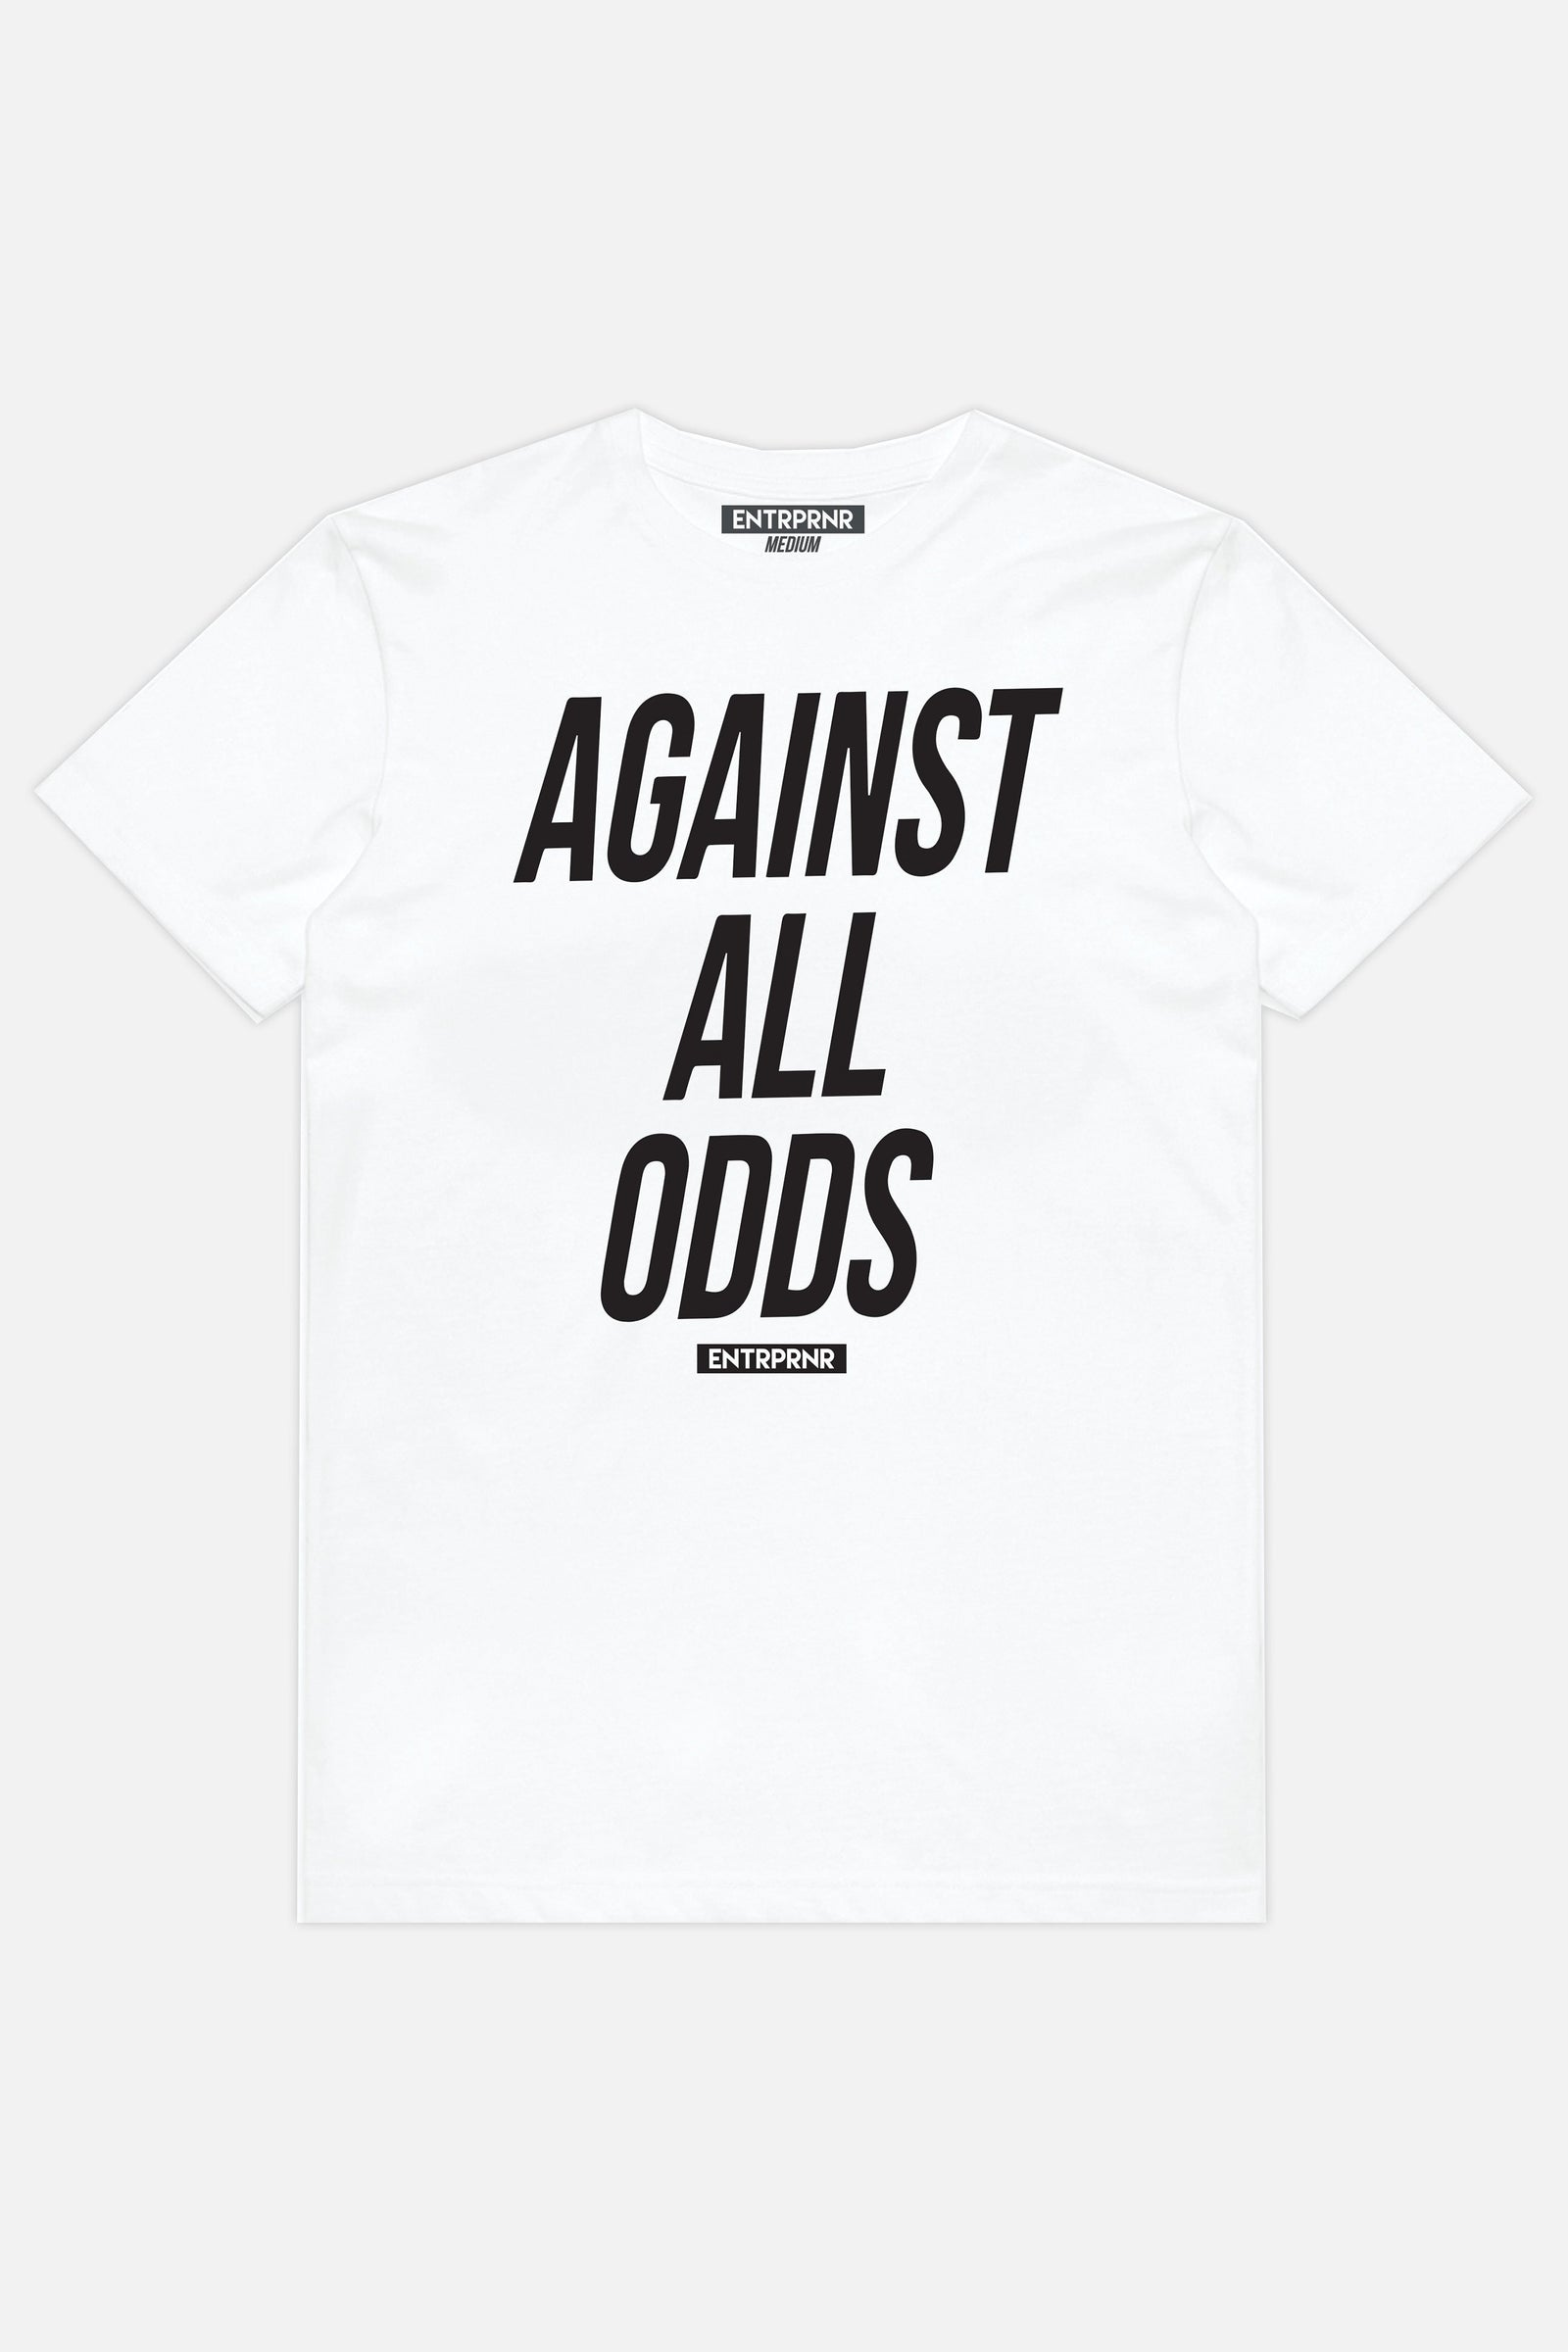 Against All Odds ENTRPRNR Tee - White - ENTRPRNR® | The Entrepreneur's Clothing Brand. | Stagnancy is the Enemy. Action is King.